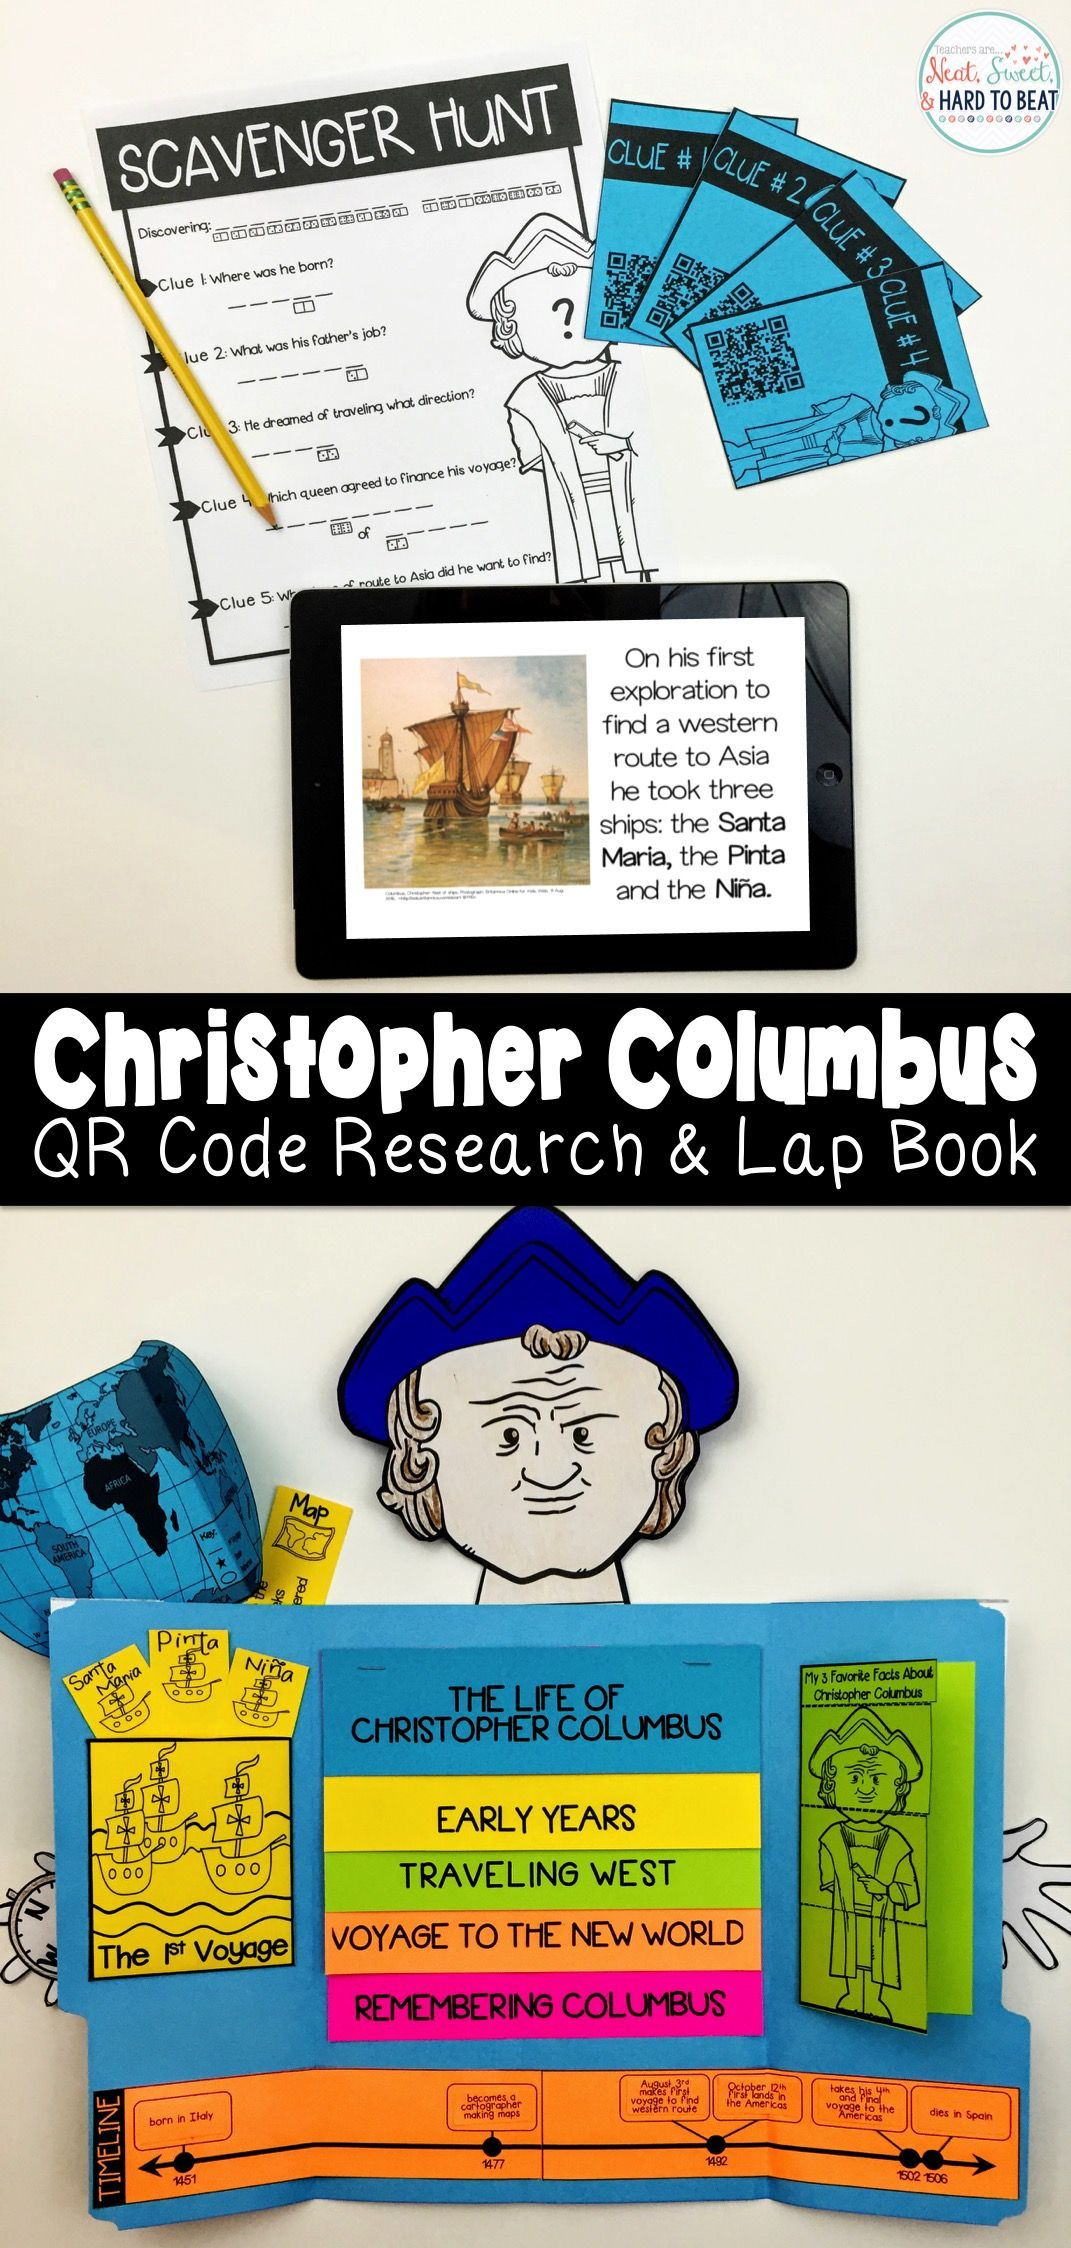 Christopher Columbus Qr Code Scavenger Hunt Amp Research